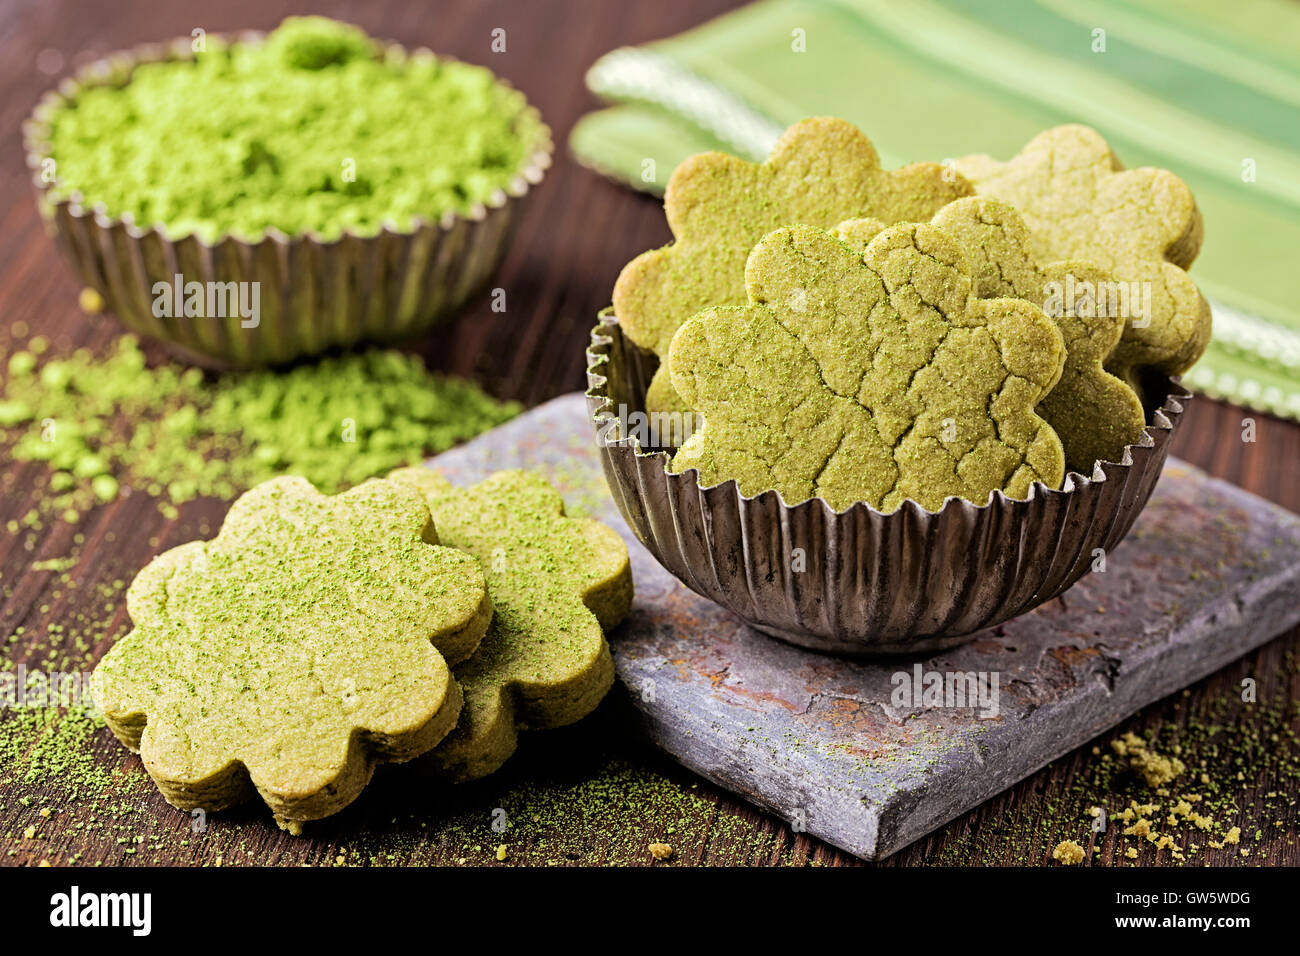 Matcha green tea cookies on a wooden table - Stock Image